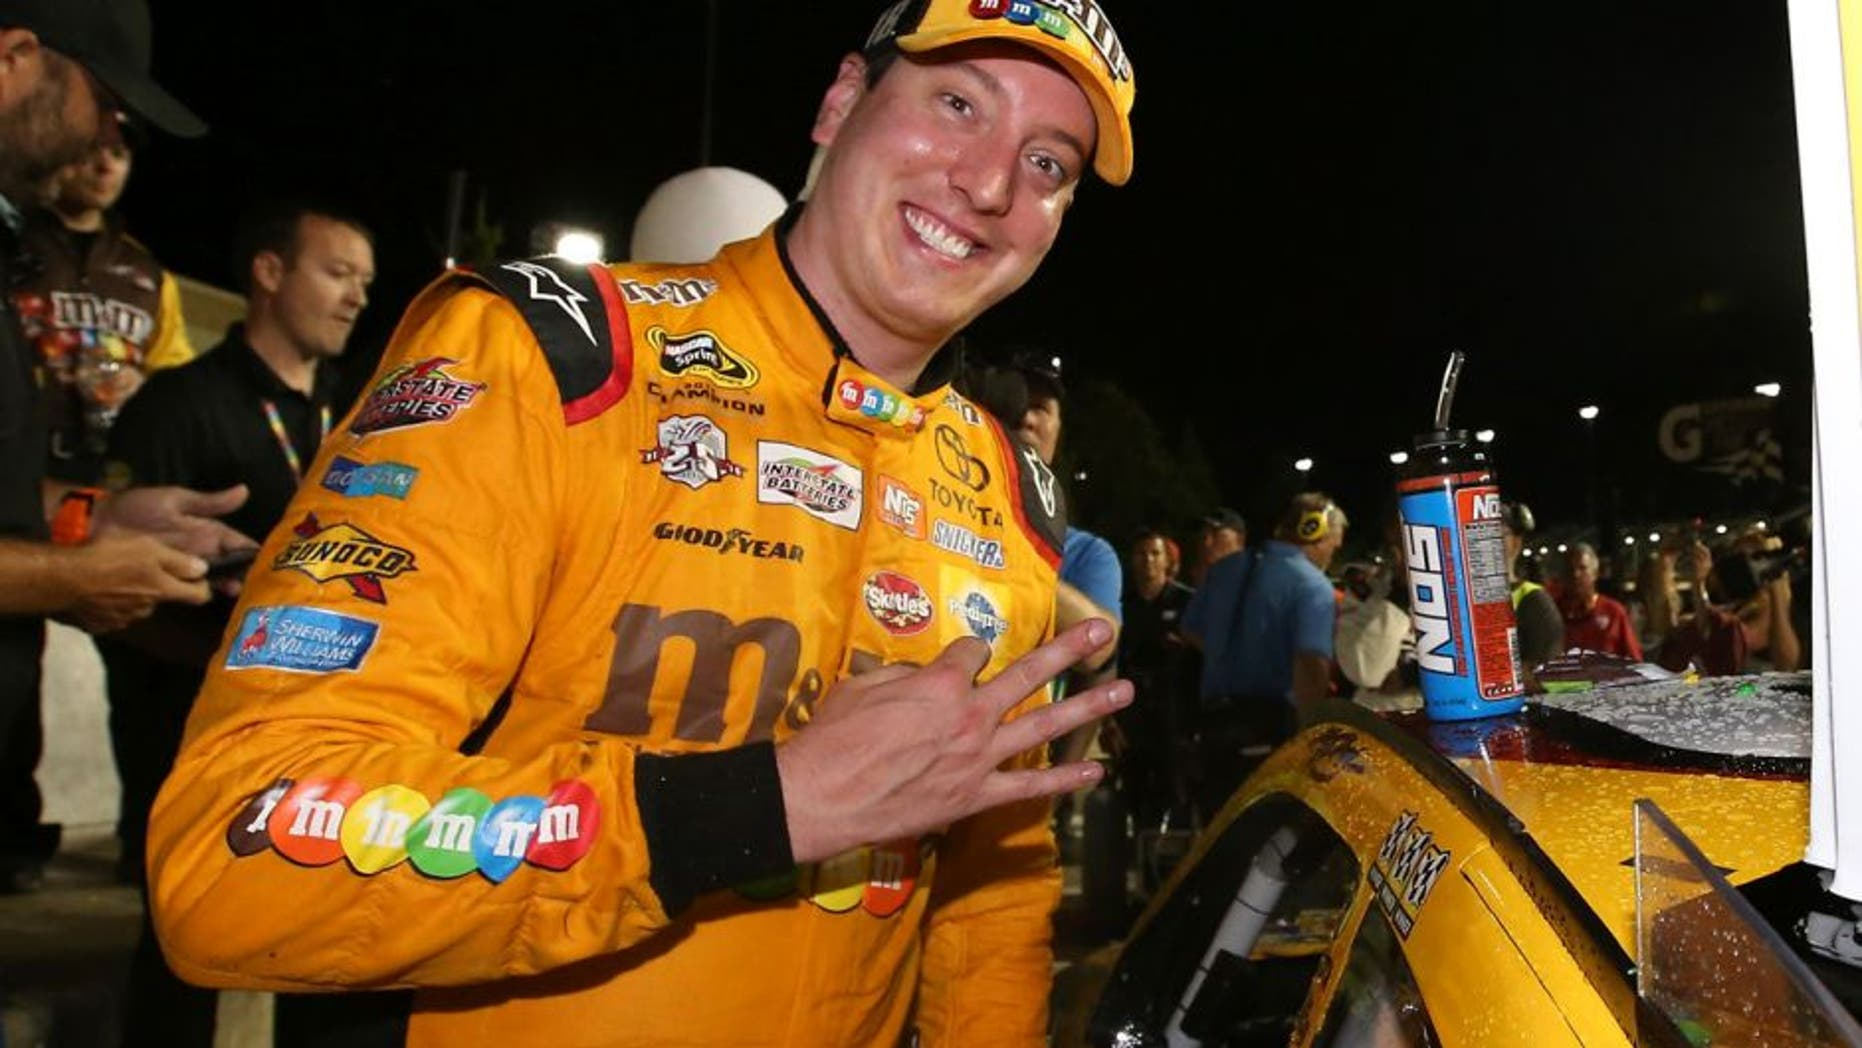 KANSAS CITY, KS - MAY 07: Kyle Busch, driver of the #18 M&M's Red Nose Toyota, celebrates after winning the NASCAR Sprint Cup Series Go Bowling 400 at Kansas Speedway on May 7, 2016 in Kansas City, Kansas. (Photo by Sean Gardner/NASCAR via Getty Images)